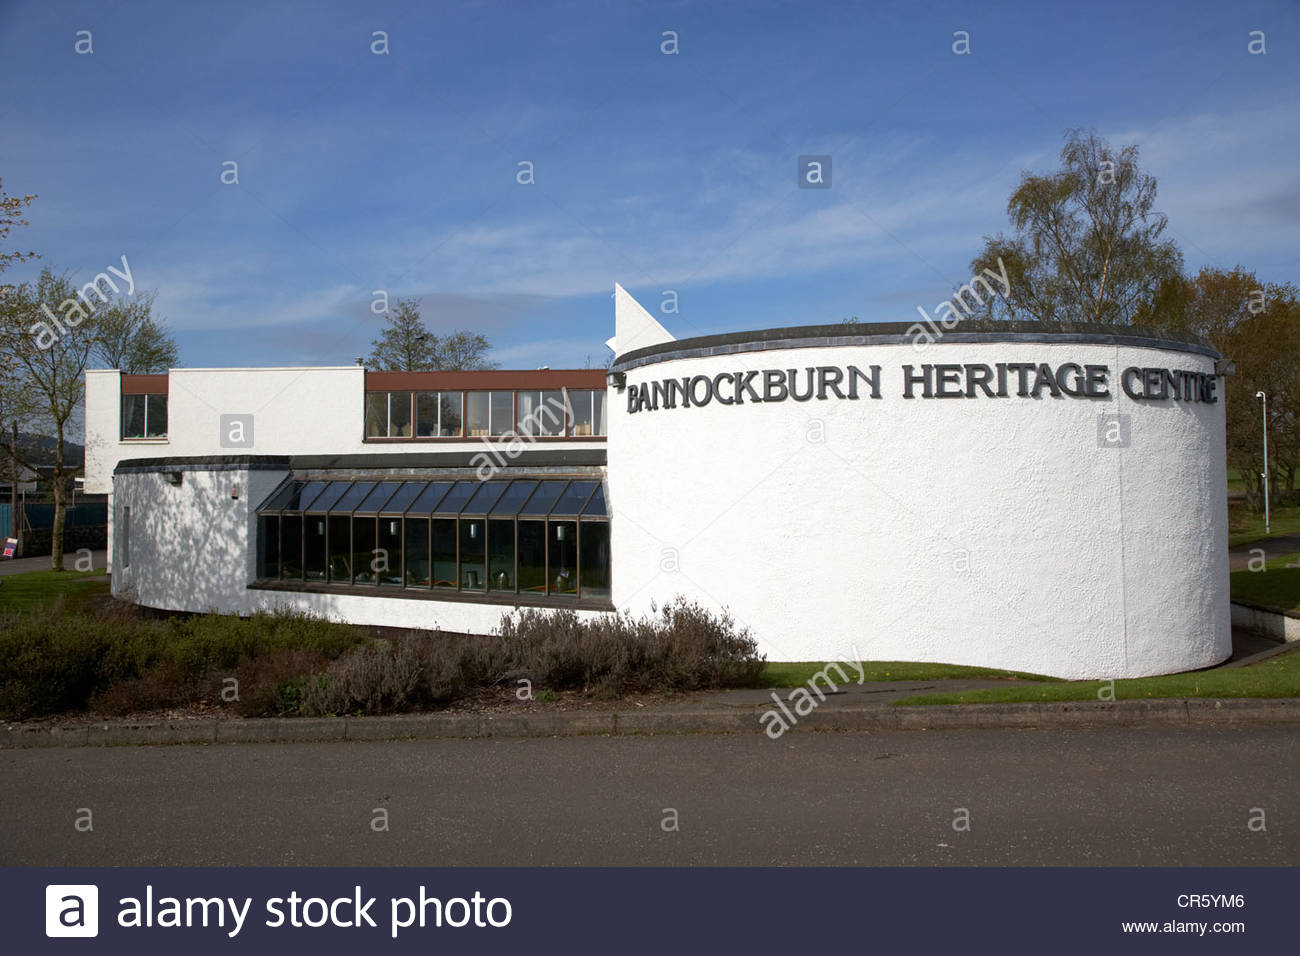 Bannockburn Heritage Centre Stirling, the bannockburn heritage centre stirling scotland uk Stock Photo ...